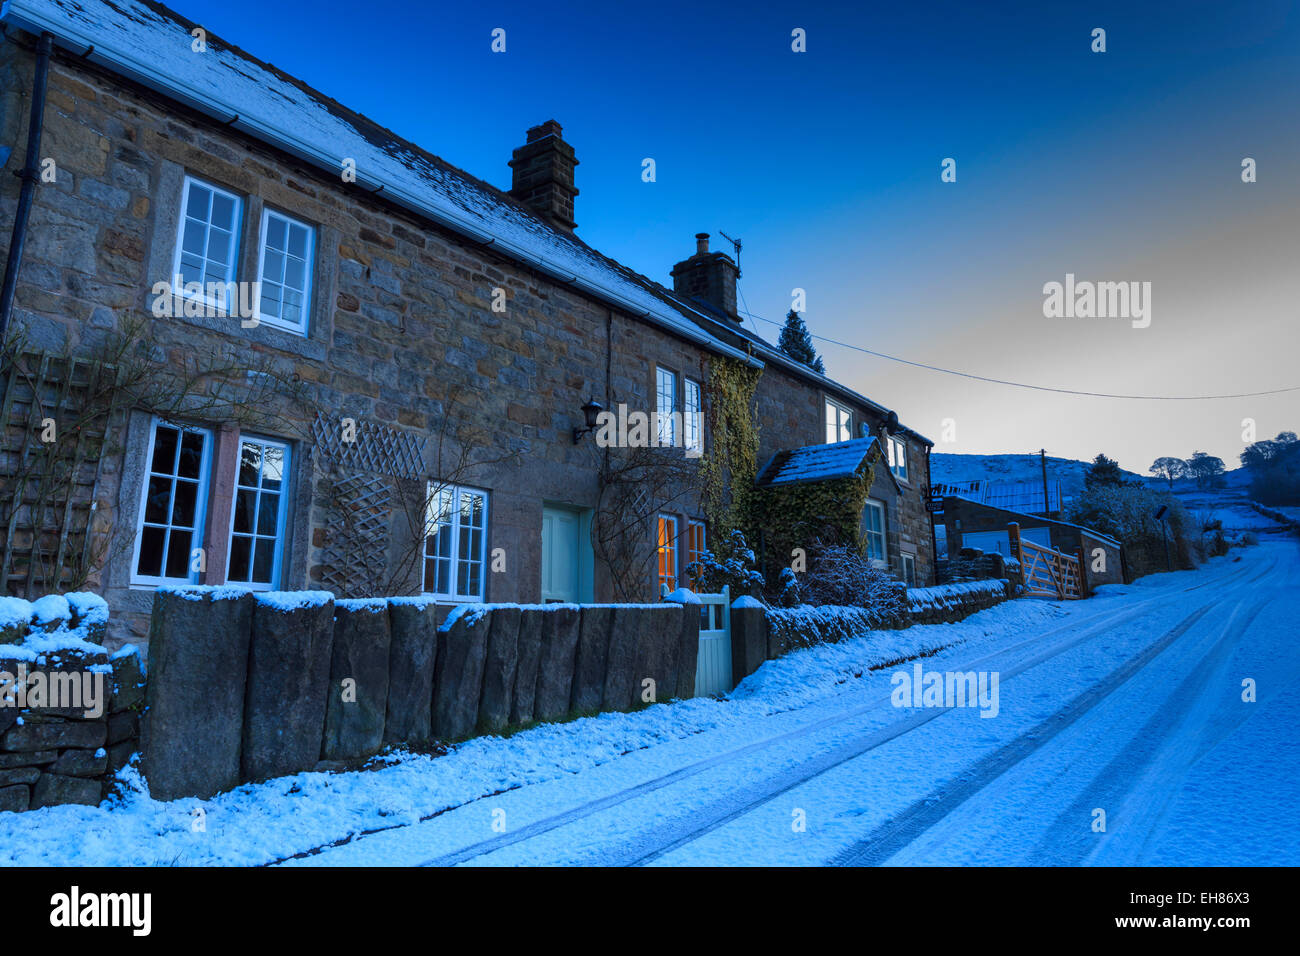 Stone cottages, on country lane at blue hour, fresh winter snowfall, Curbar, Peak District National Park, Derbyshire, - Stock Image